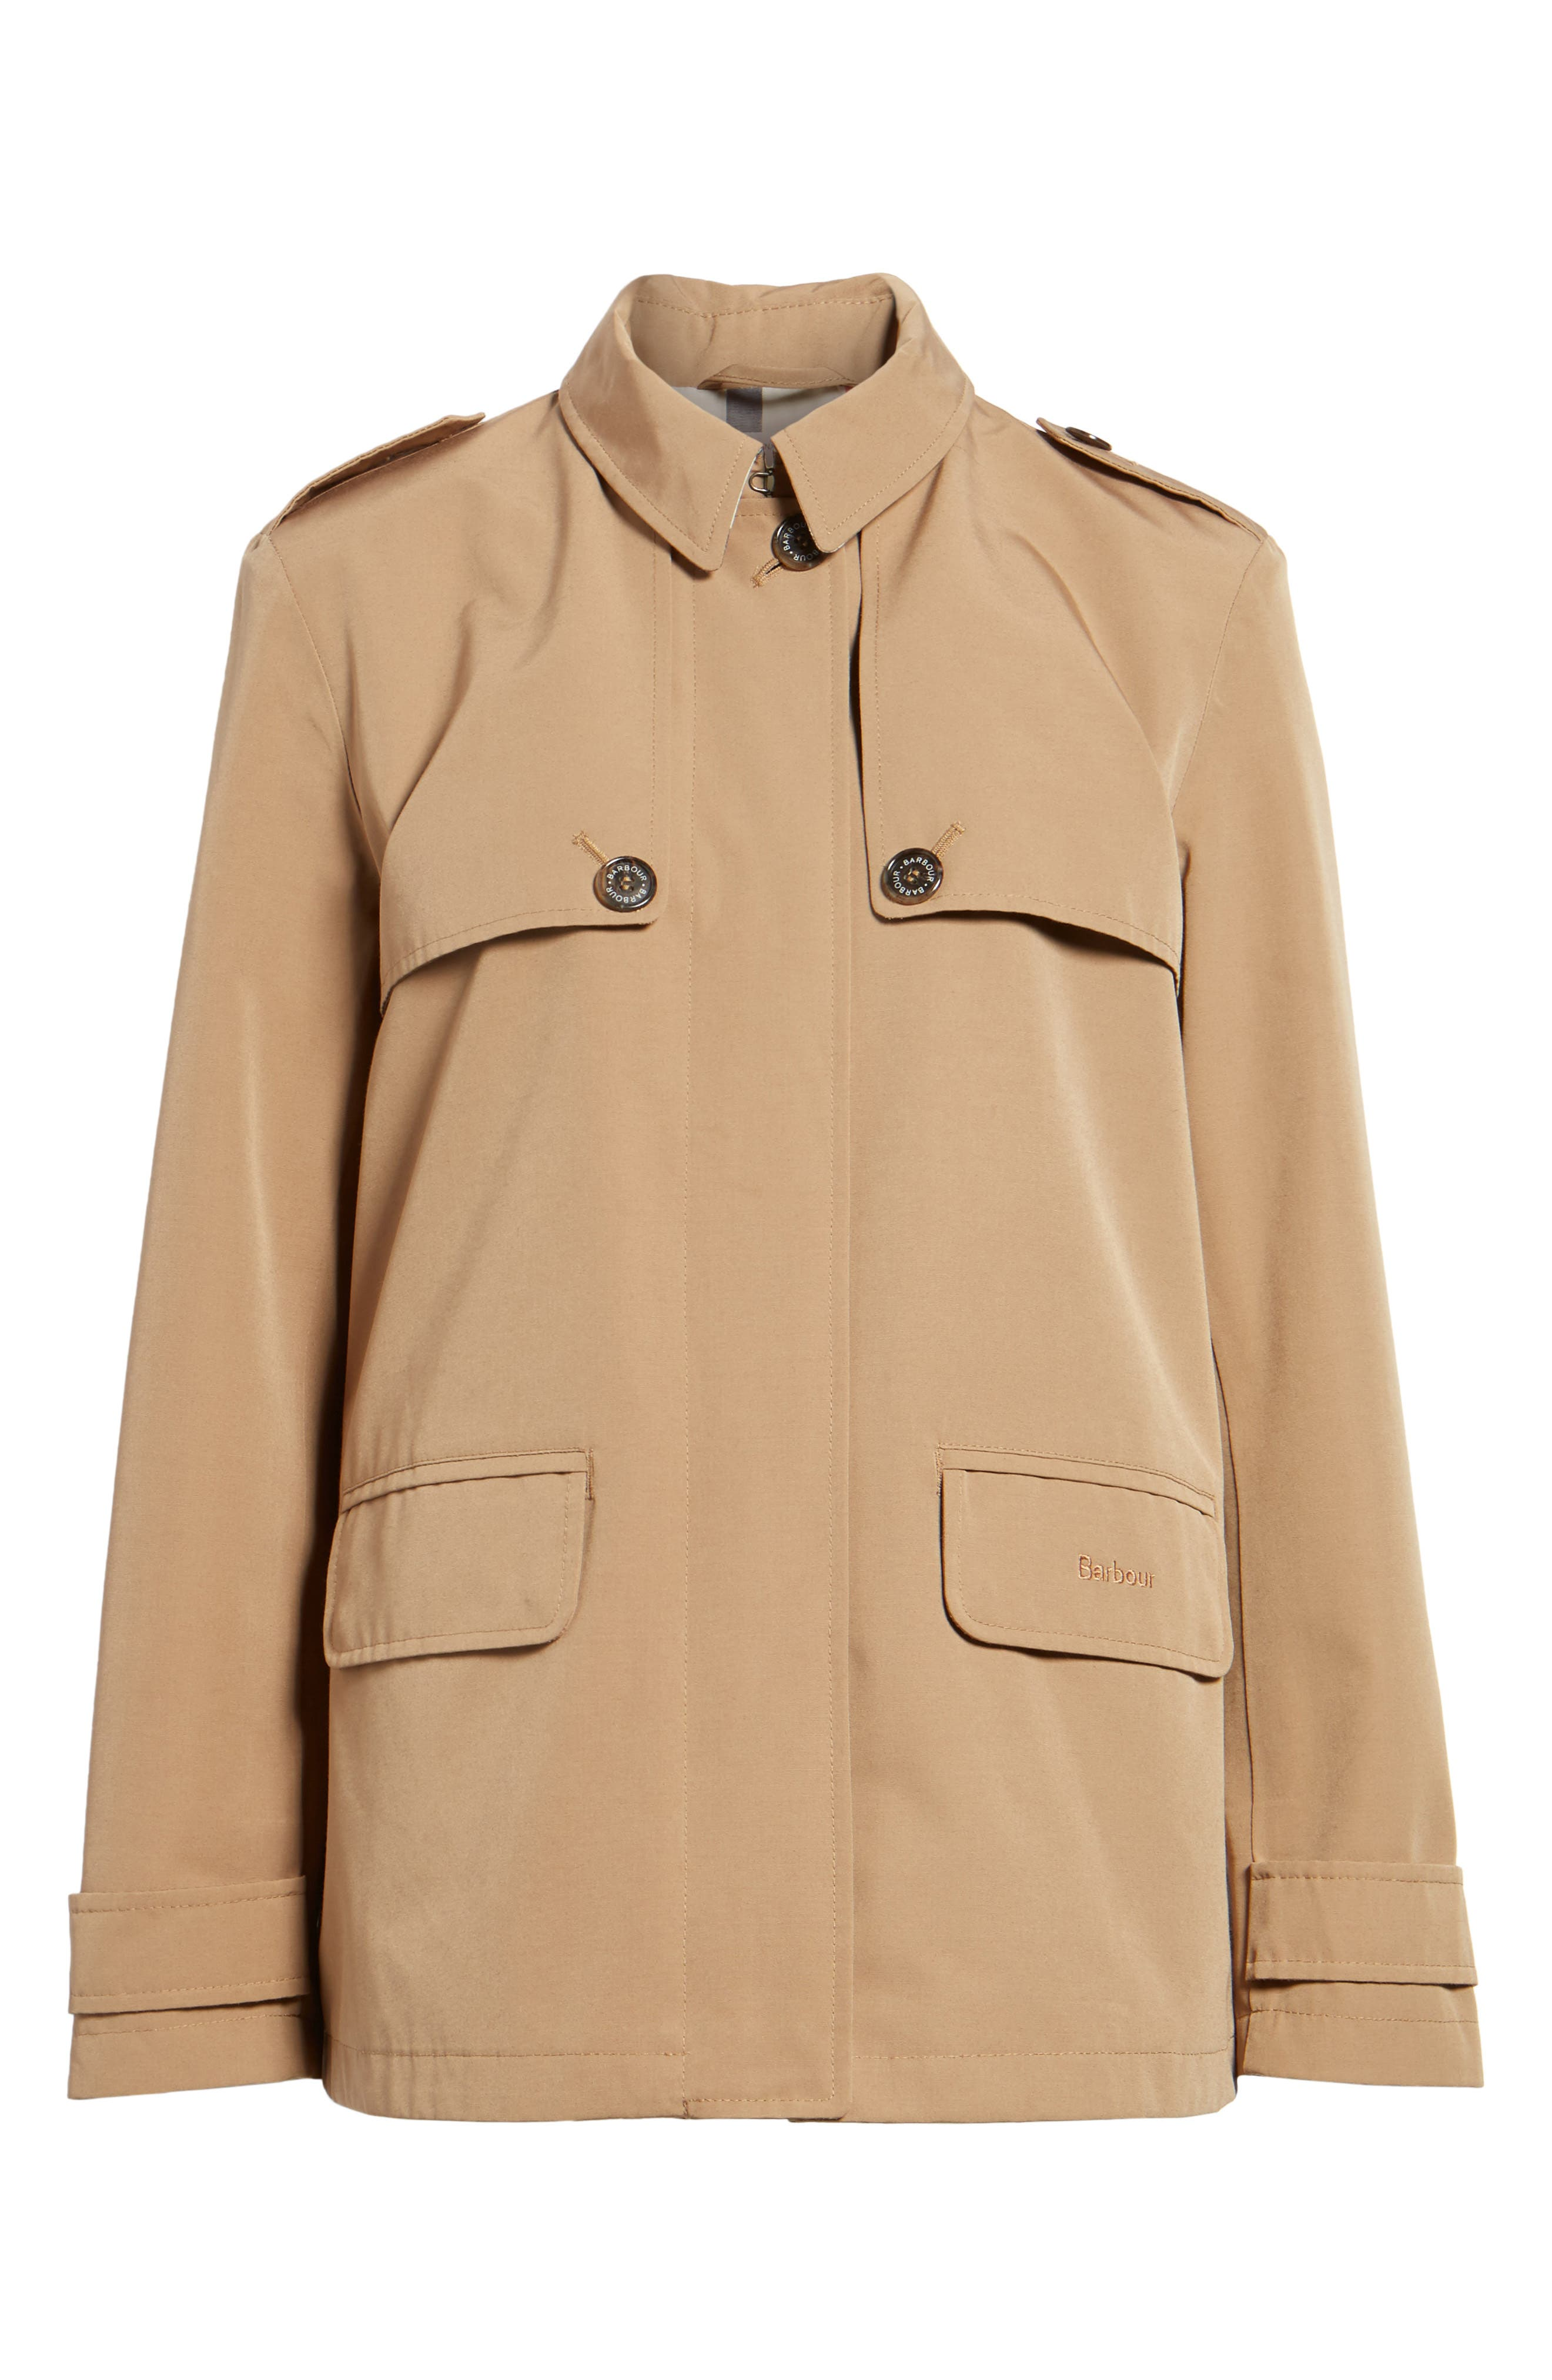 Glenroths Waterproof Jacket,                             Alternate thumbnail 5, color,                             260